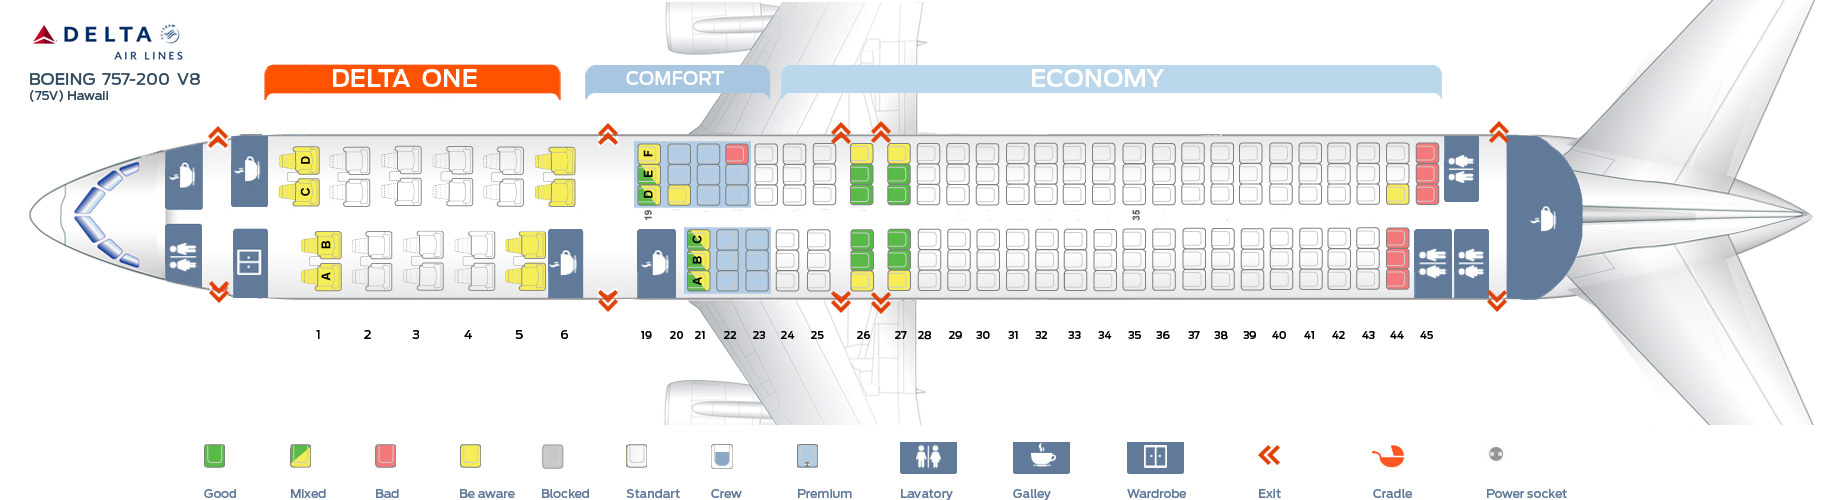 Seat_map_Delta_Airlines_Boeing_757-200_75V_v8